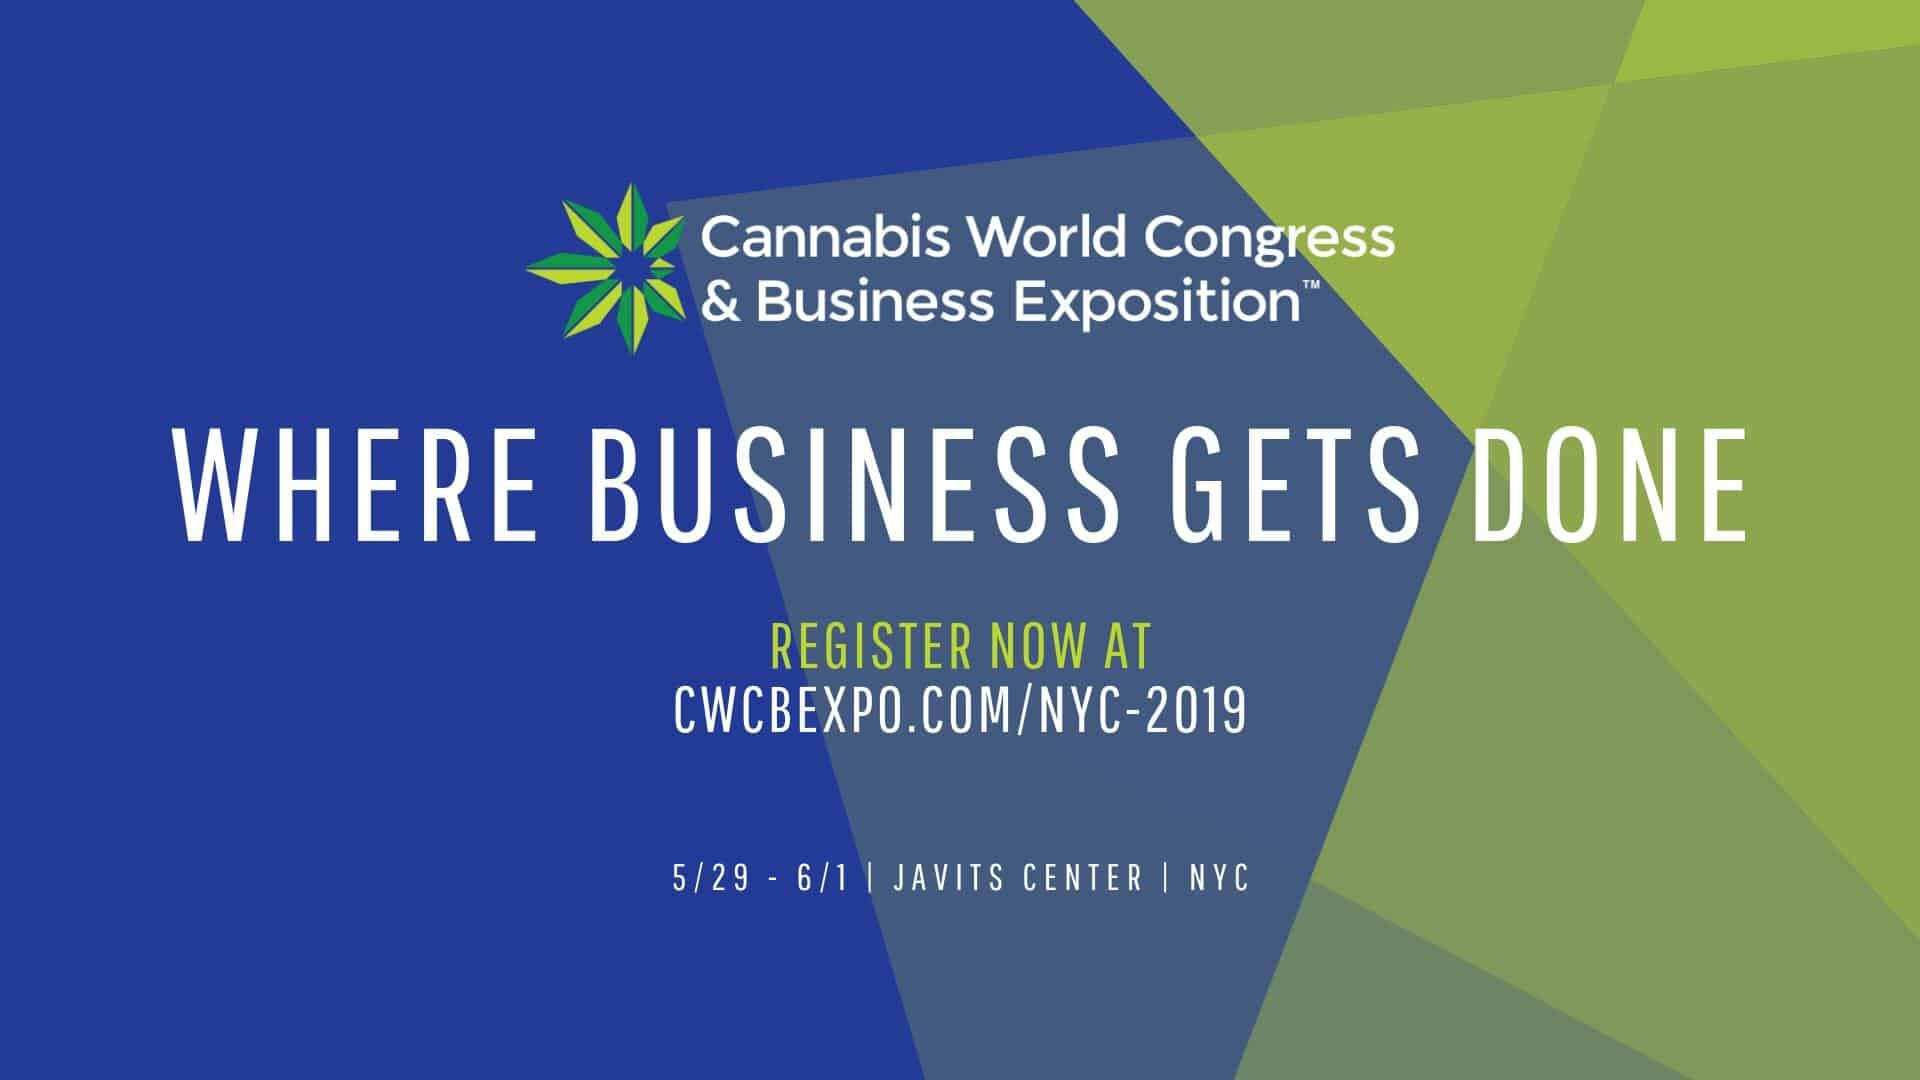 Cannabis Means Business: Behind the Scenes at CWCBExpo with Greg Marco